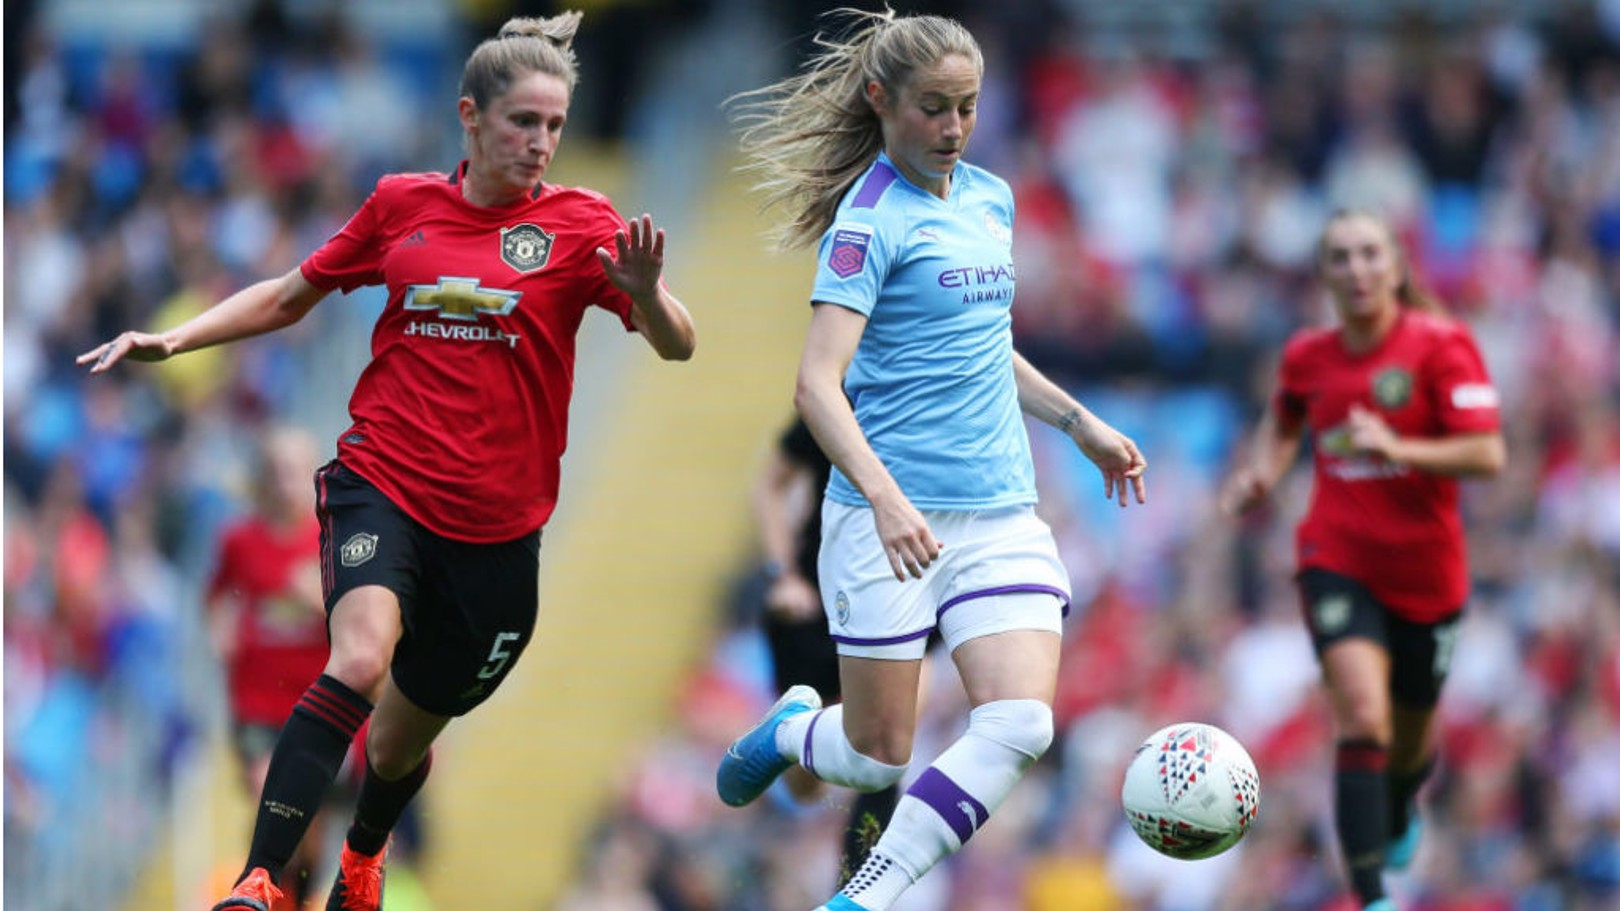 FORWARD MARCH: Janine Beckie in action during last month's historic derby clash with Manchester United